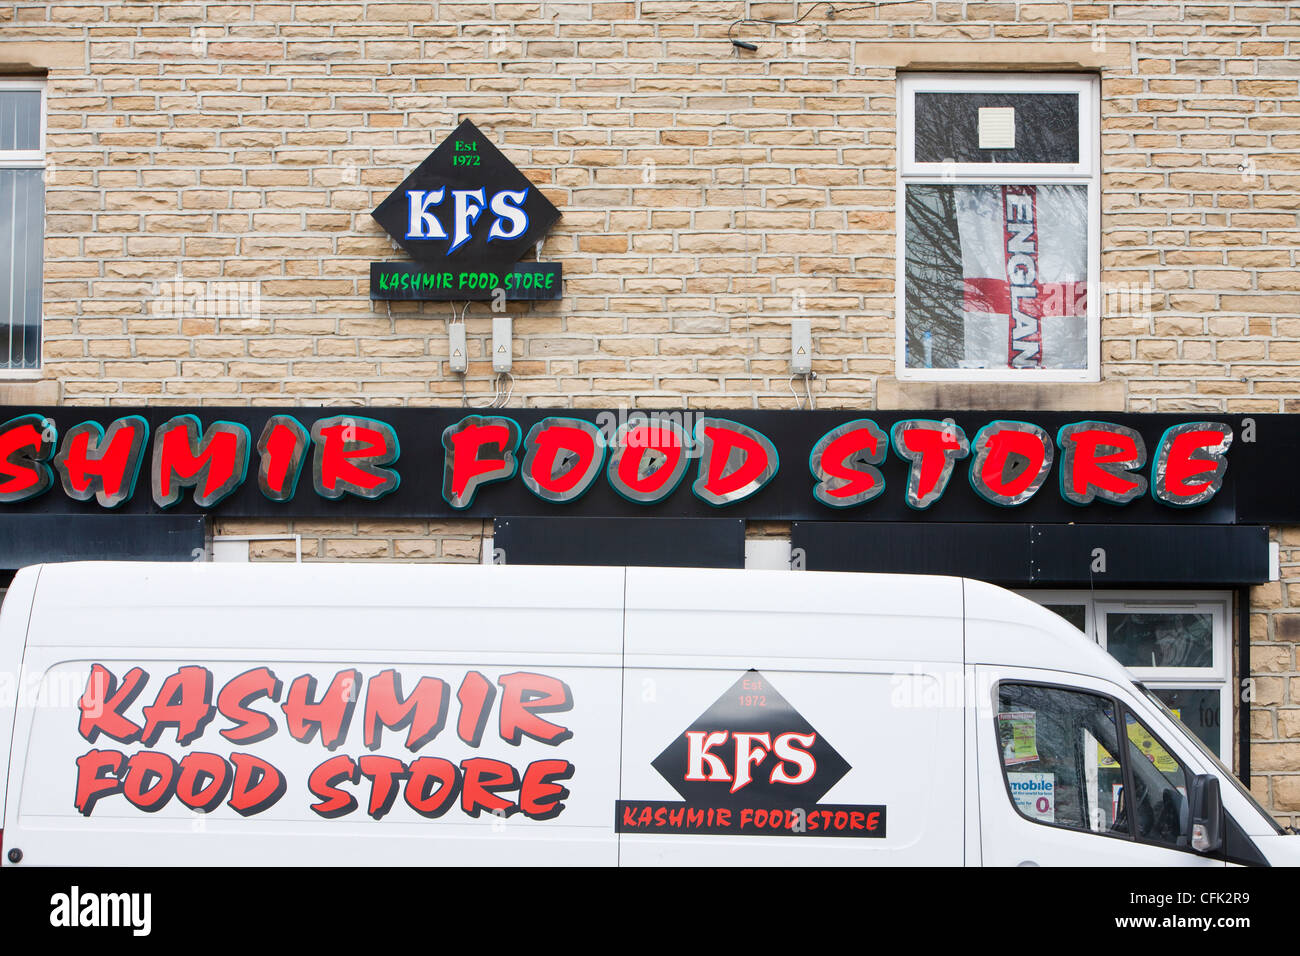 Asian Food Store West London